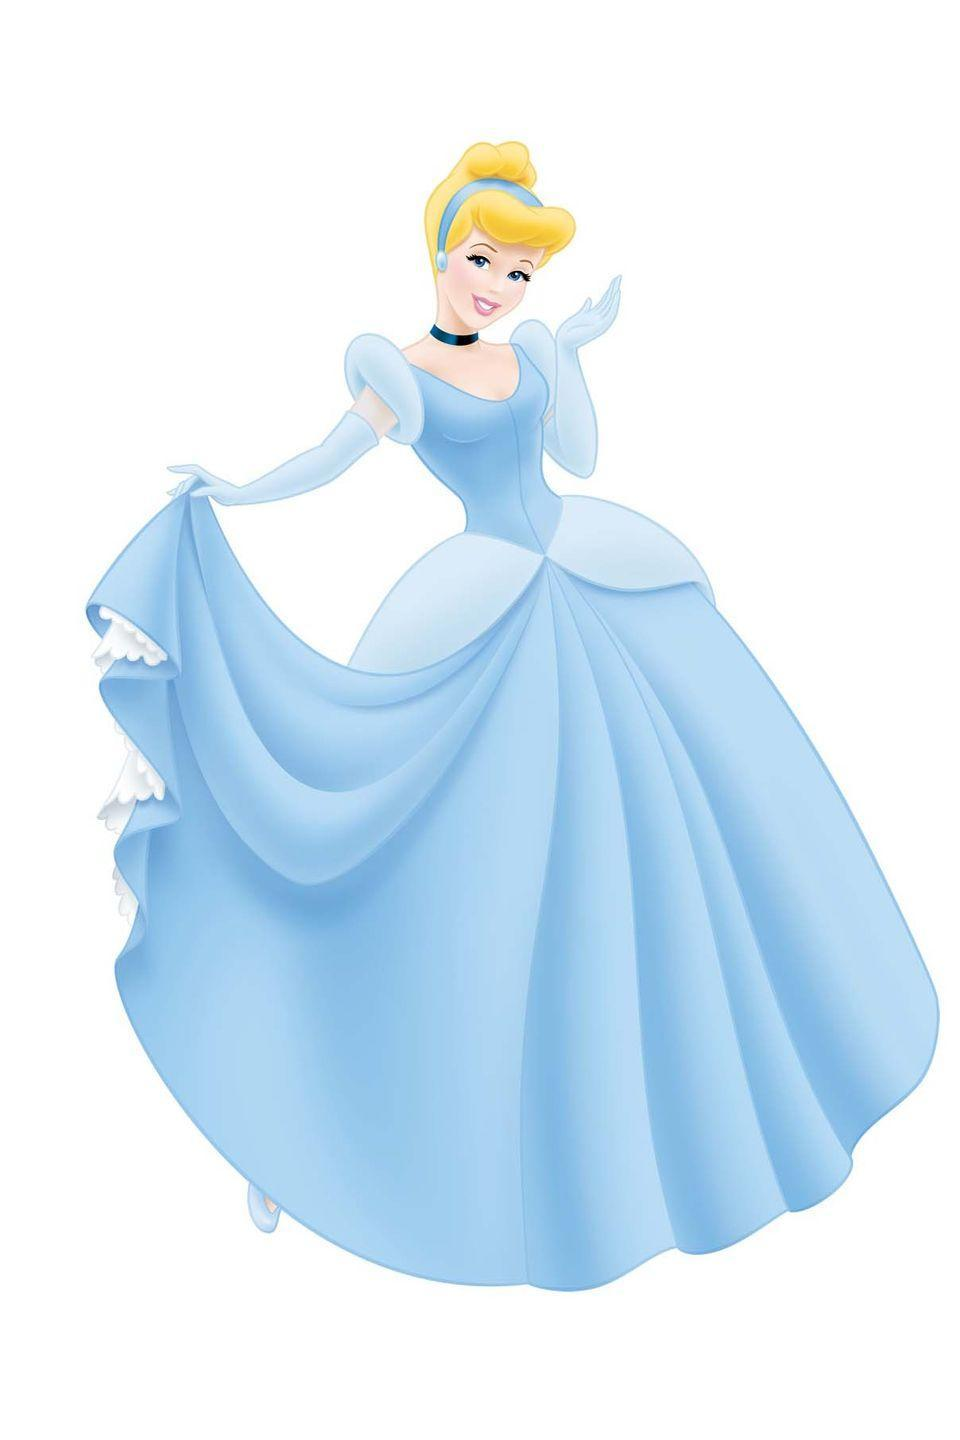 <p>Cinderella made her debut in Disney's 1950 film, wearing a light-blue gown with a full skirt.</p>